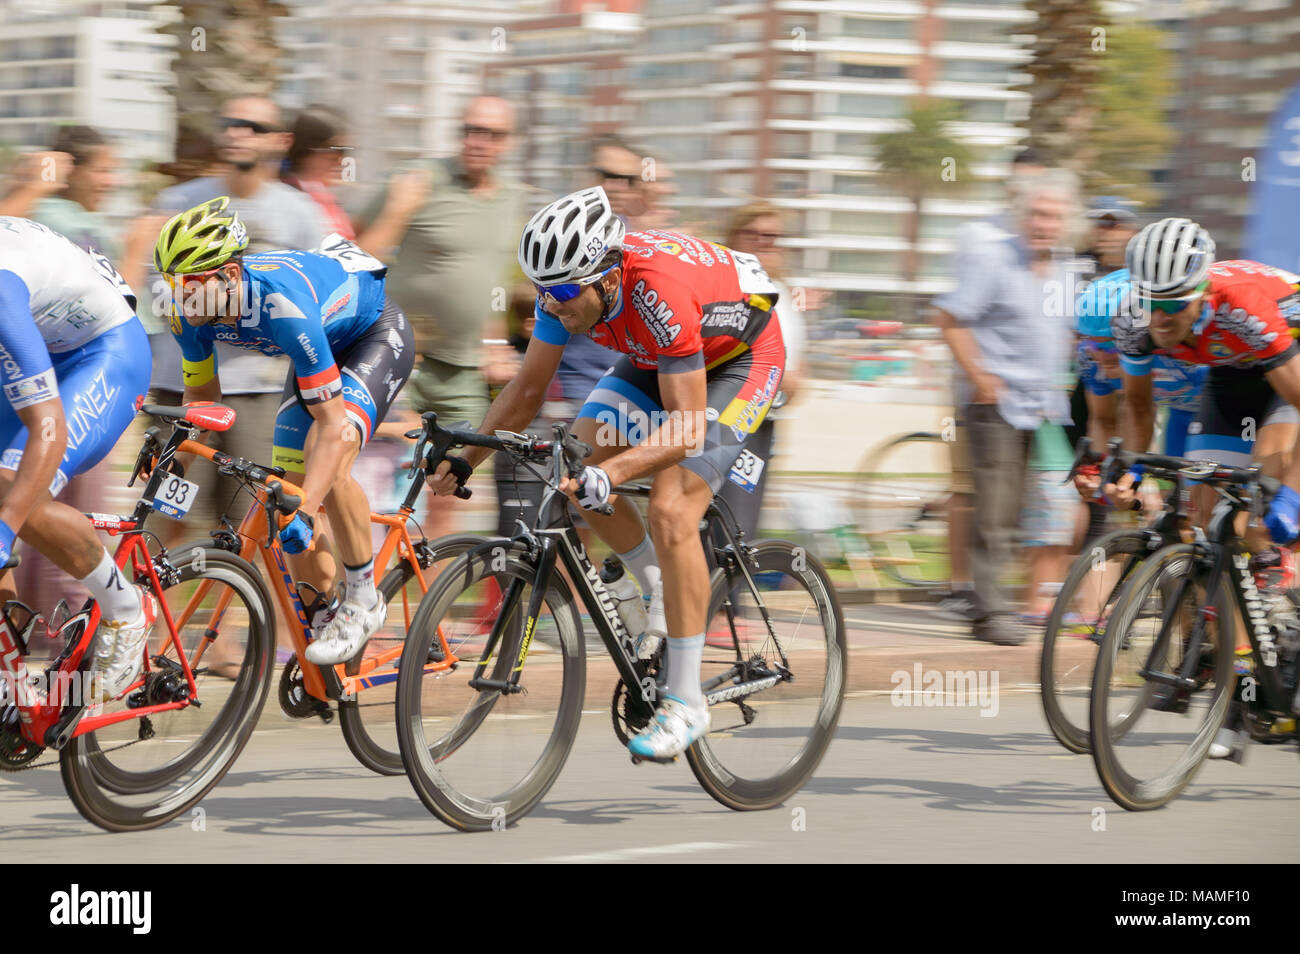 MONTEVIDEO, URUGUAY – APRIL 1, 2018: Cyclists in the last stage, 75 edition of vuelta ciclistica del Uruguay. - Stock Image